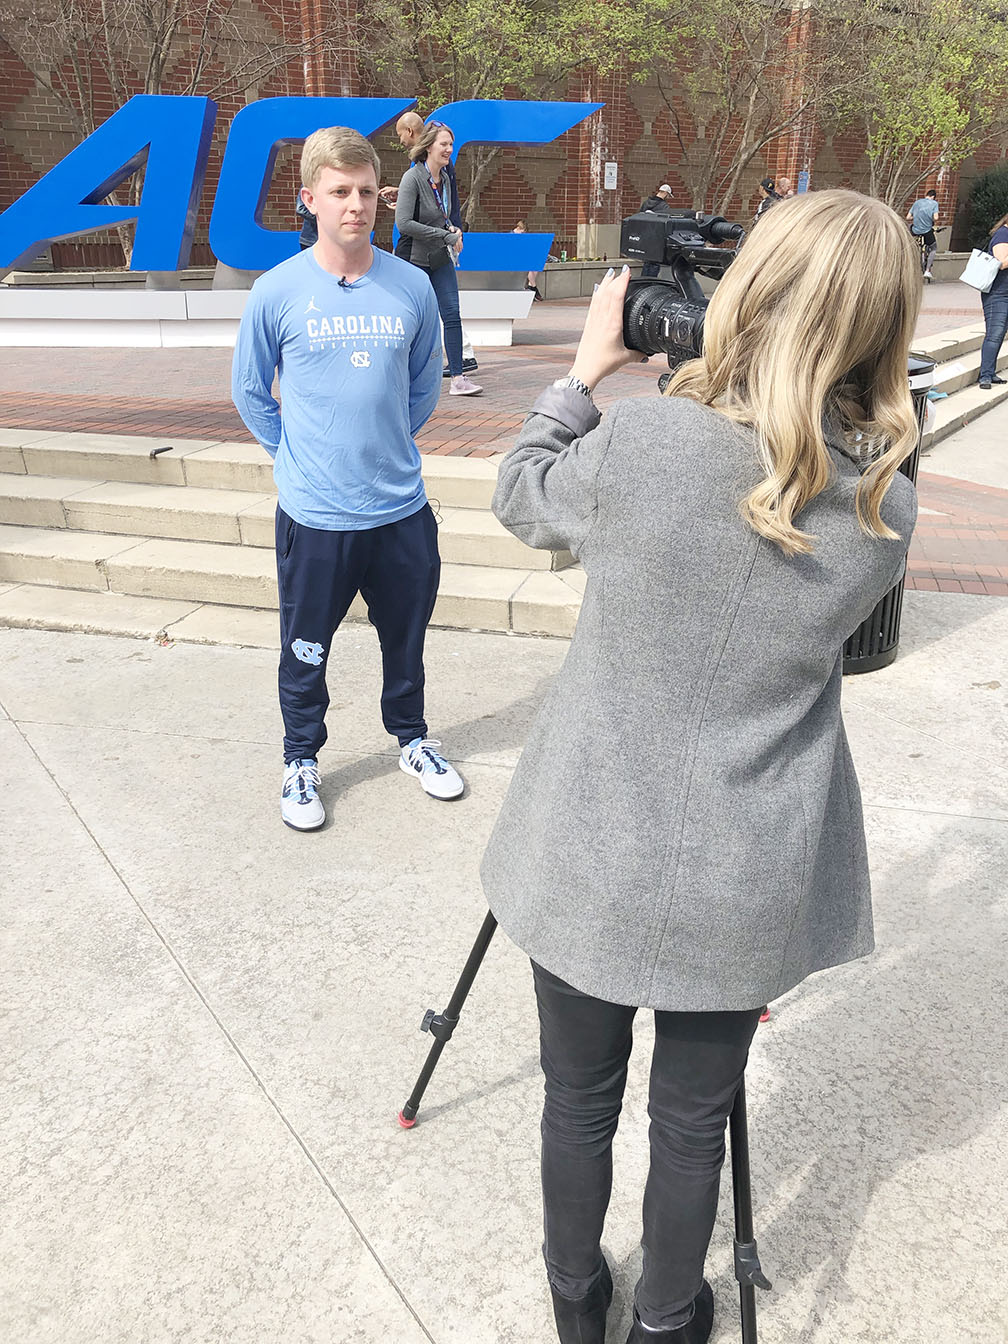 UNC men's basketball manager Tyson Creech prepares to be interviewed by WCTI ABC-12's Ariel Epstein outside the Spectrum Center in downtown Charlotte. Photo by Bryan Hanks / Neuse News